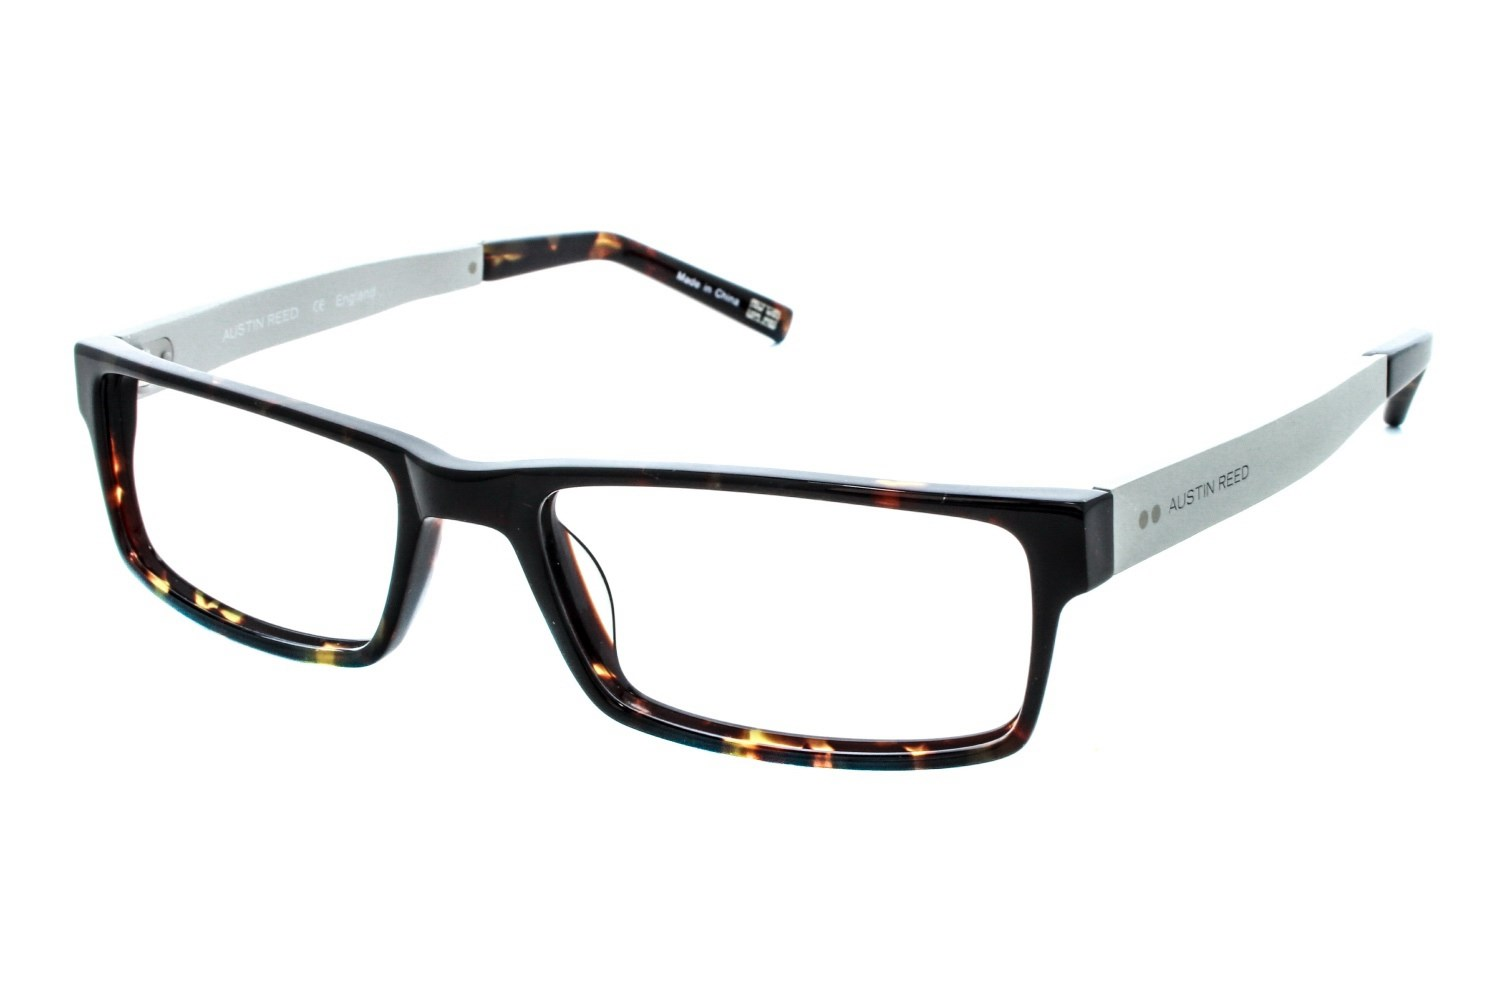 Austin Reed Ar R07 Prescription Eyeglasses Frames Aclensinspired